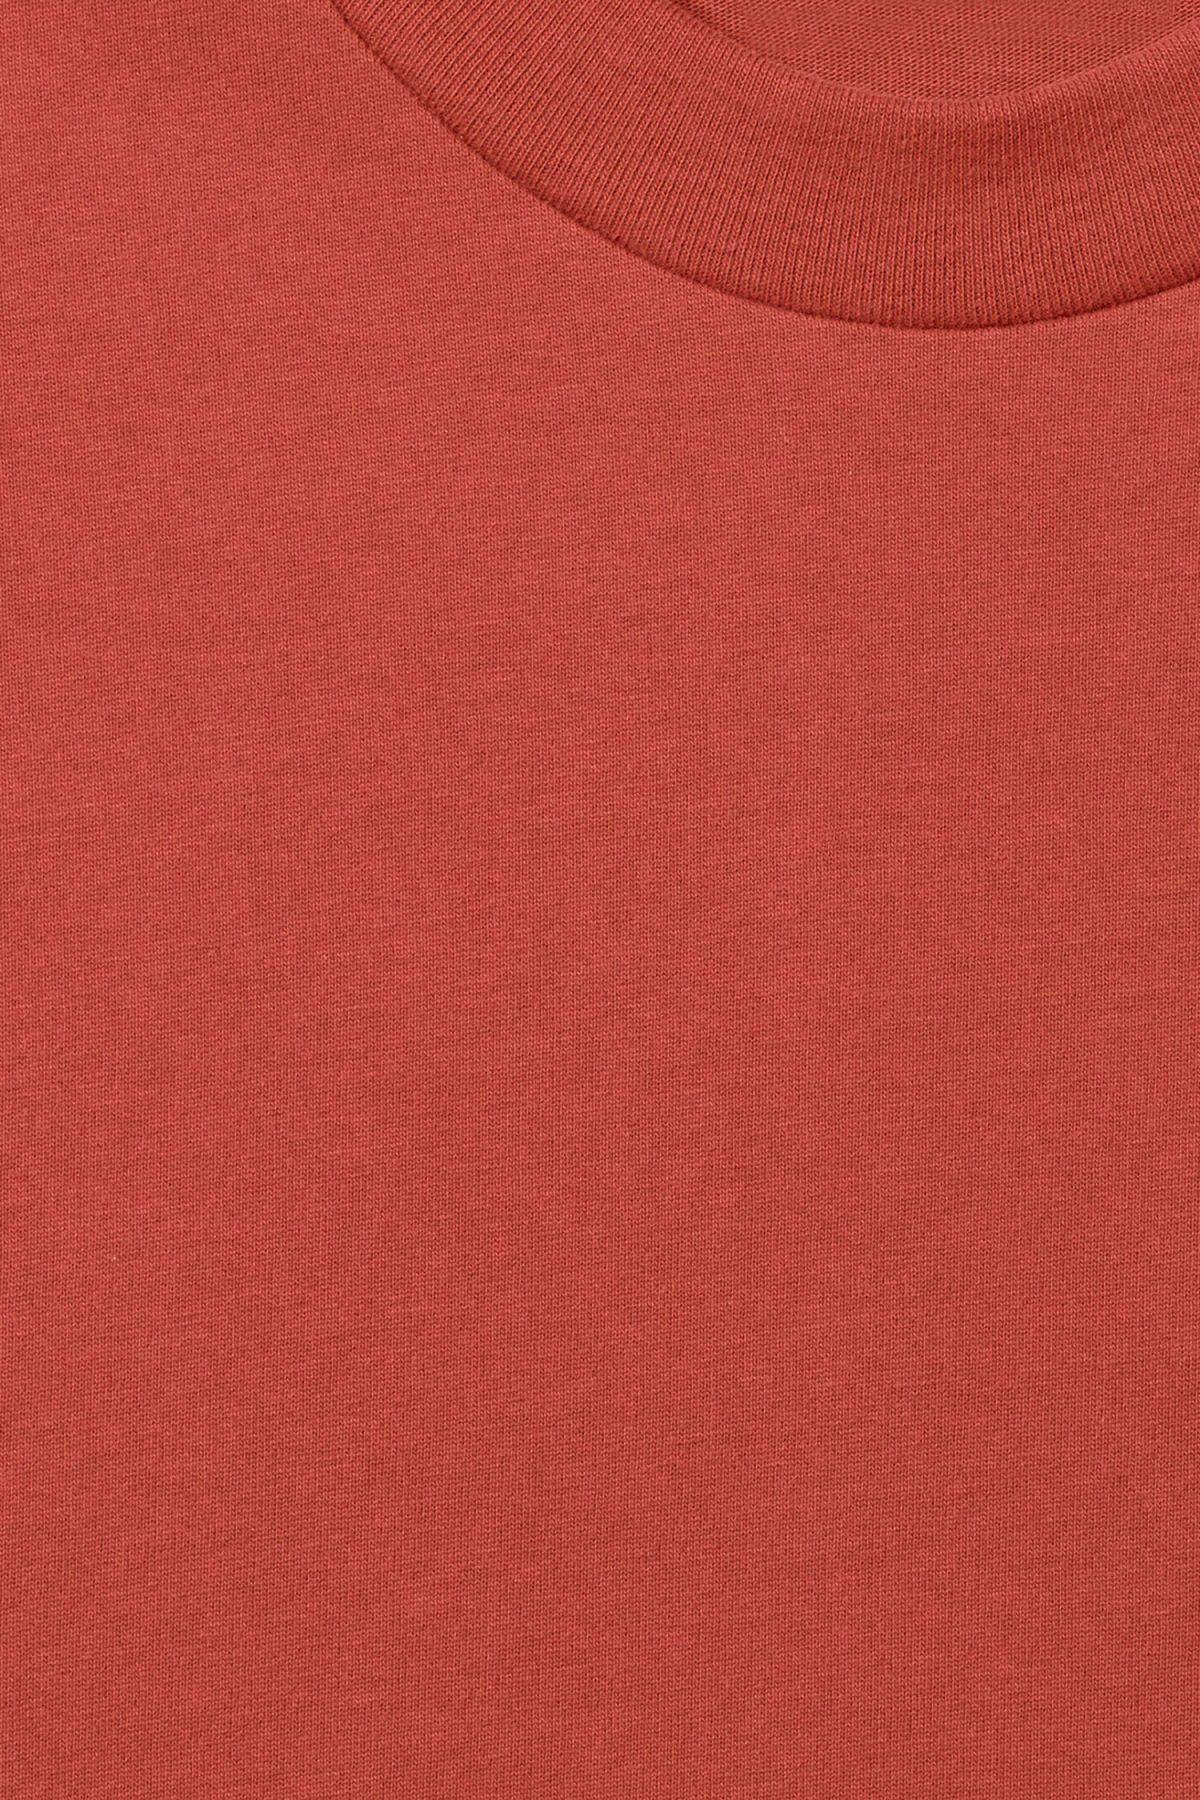 Detailed image of Weekday great t-shirt in red